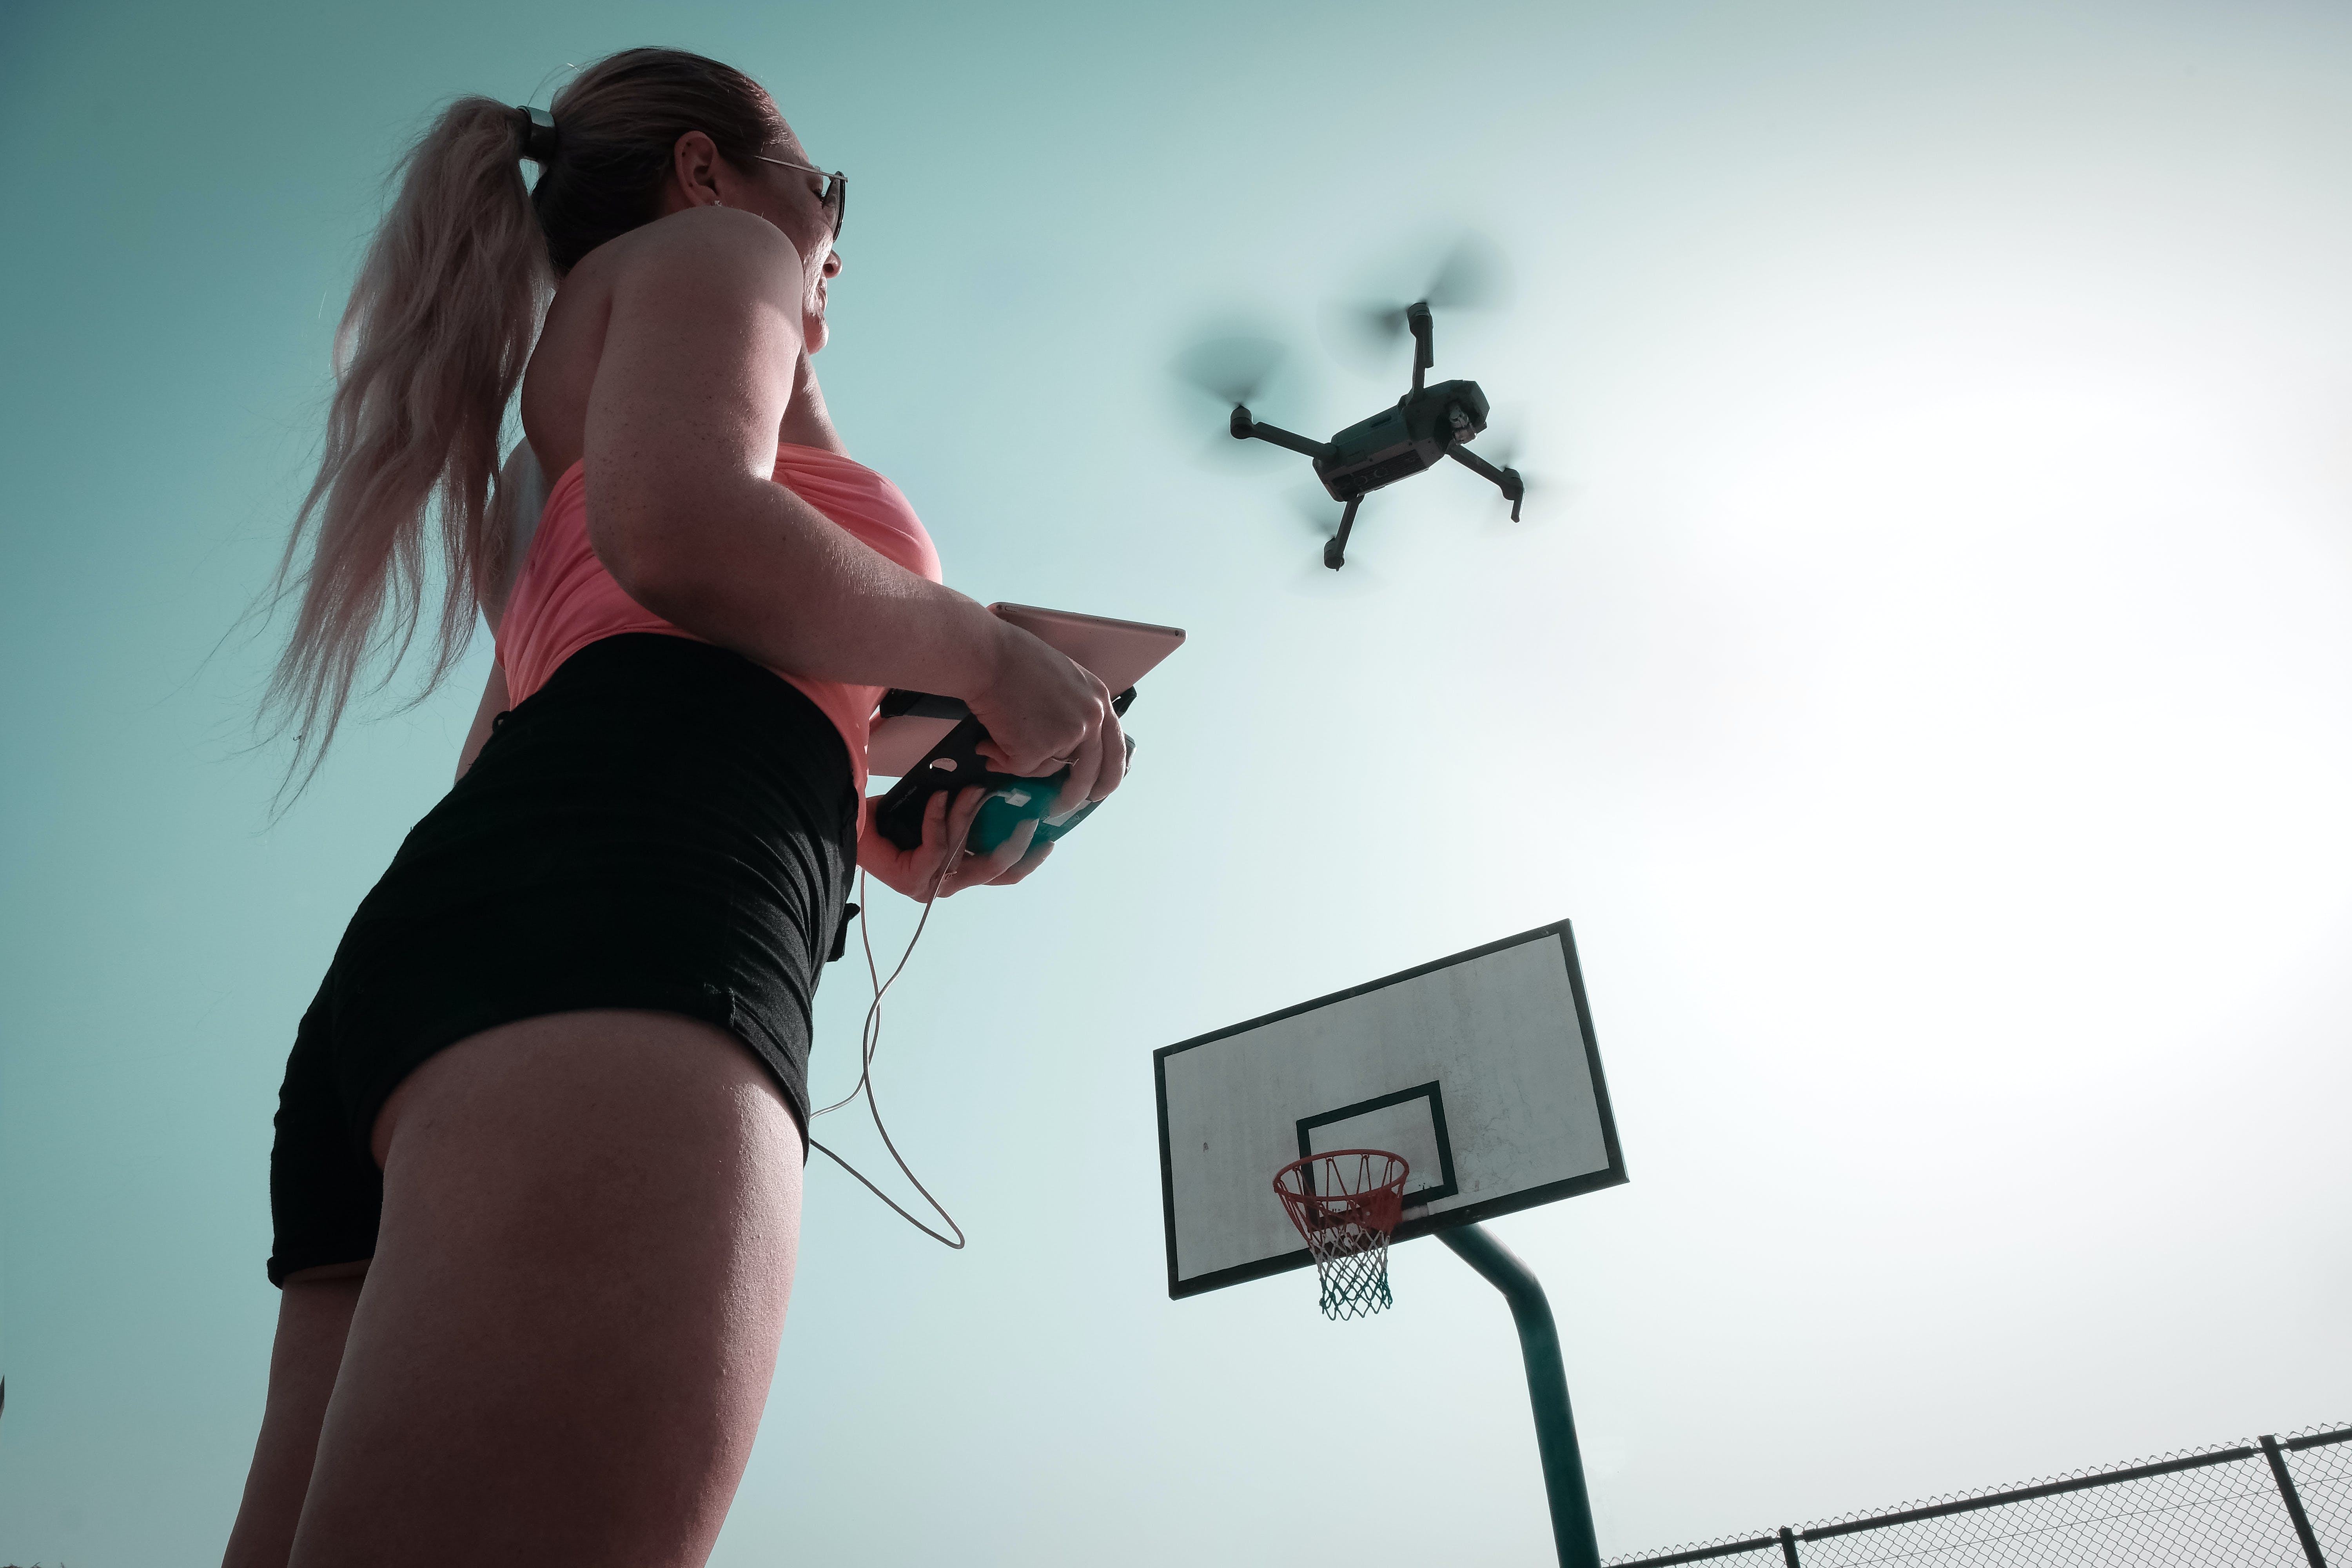 Woman Standing Near Basketball Hoop Controlling Drone